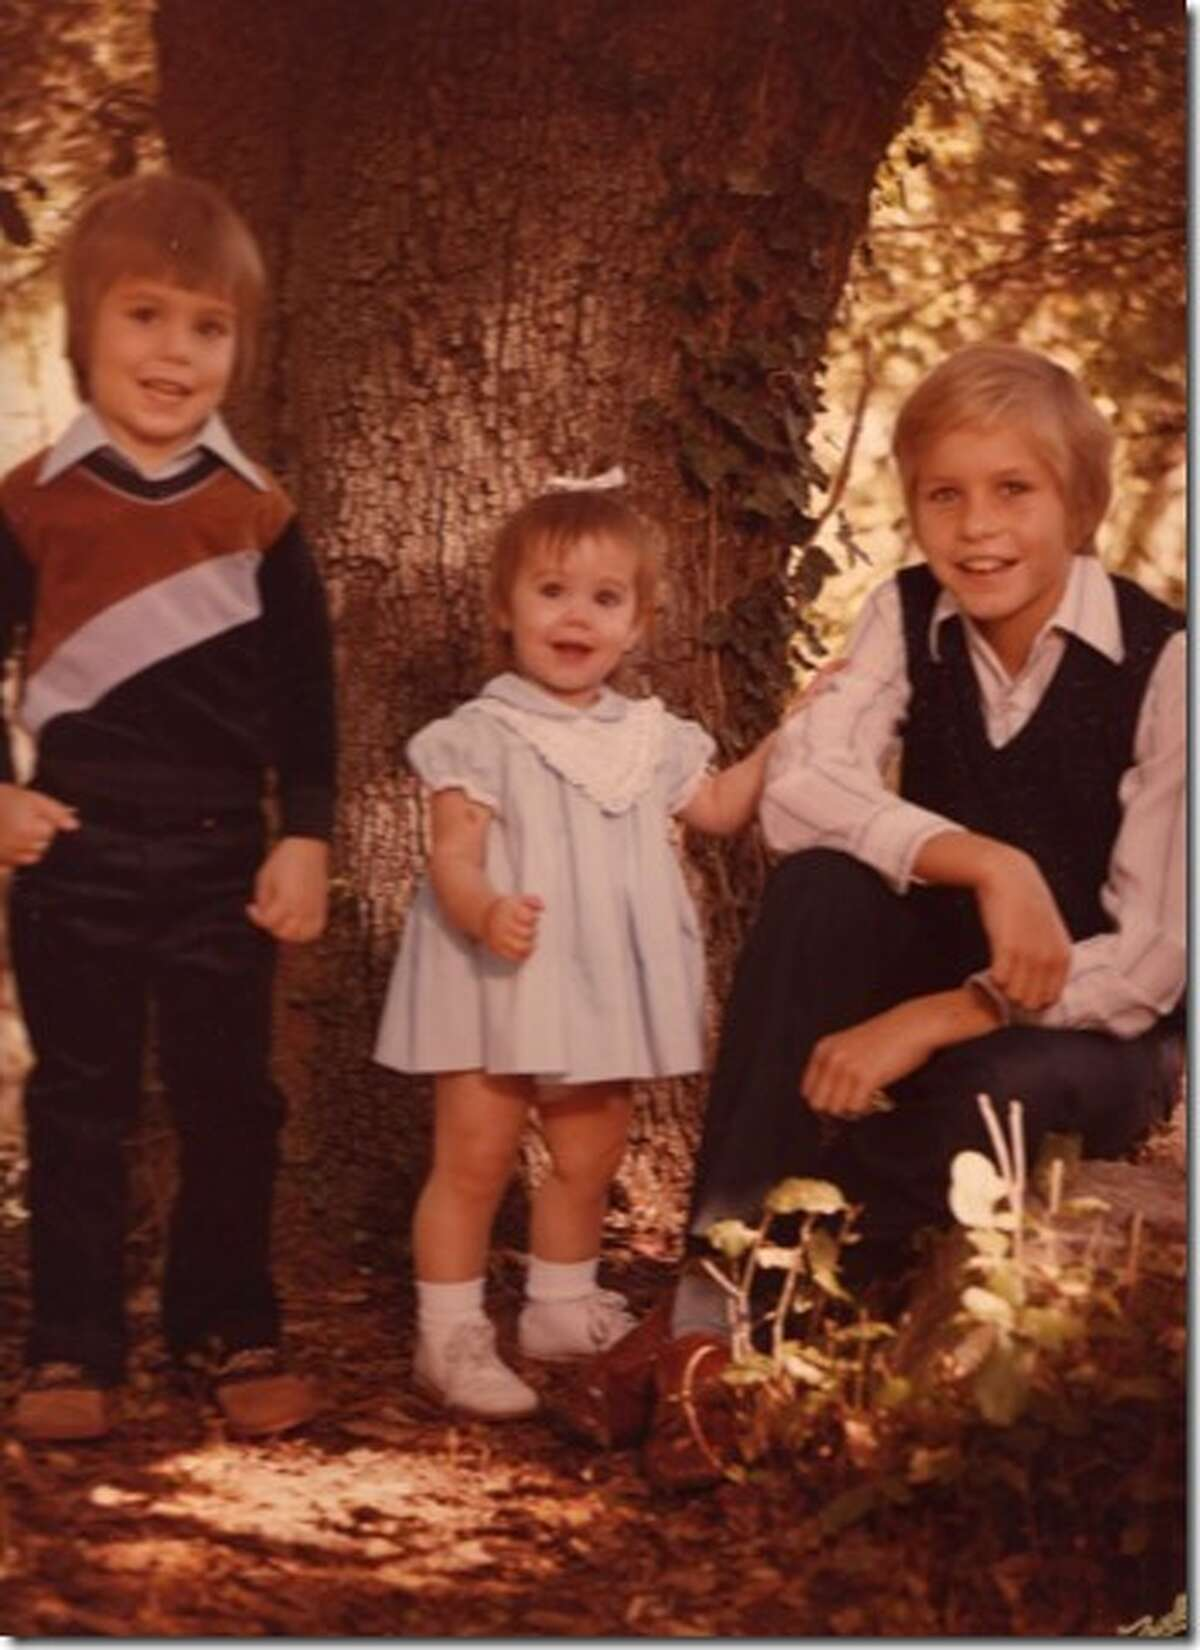 The original picture was taken in fall 1980 when my children were (Jeff) 4, (Jill) 1 and (John) 11. The picture was taken in San Antonio by Zavell Smith photography.